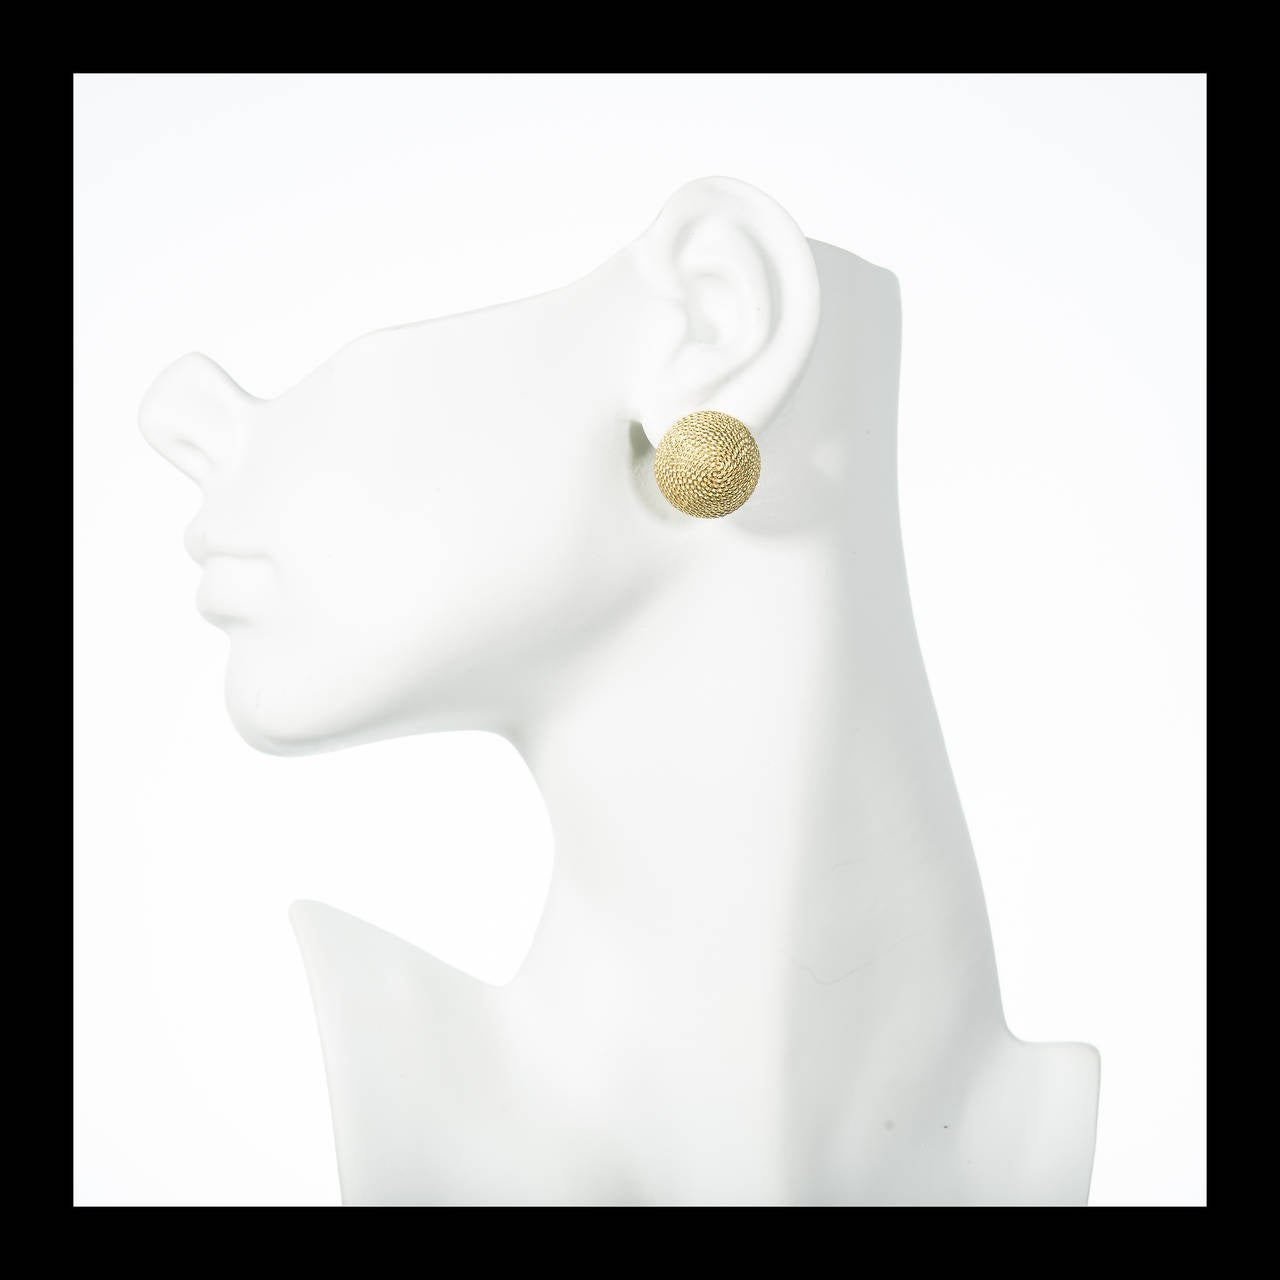 Textured Gold Domed Button Style Earrings 4